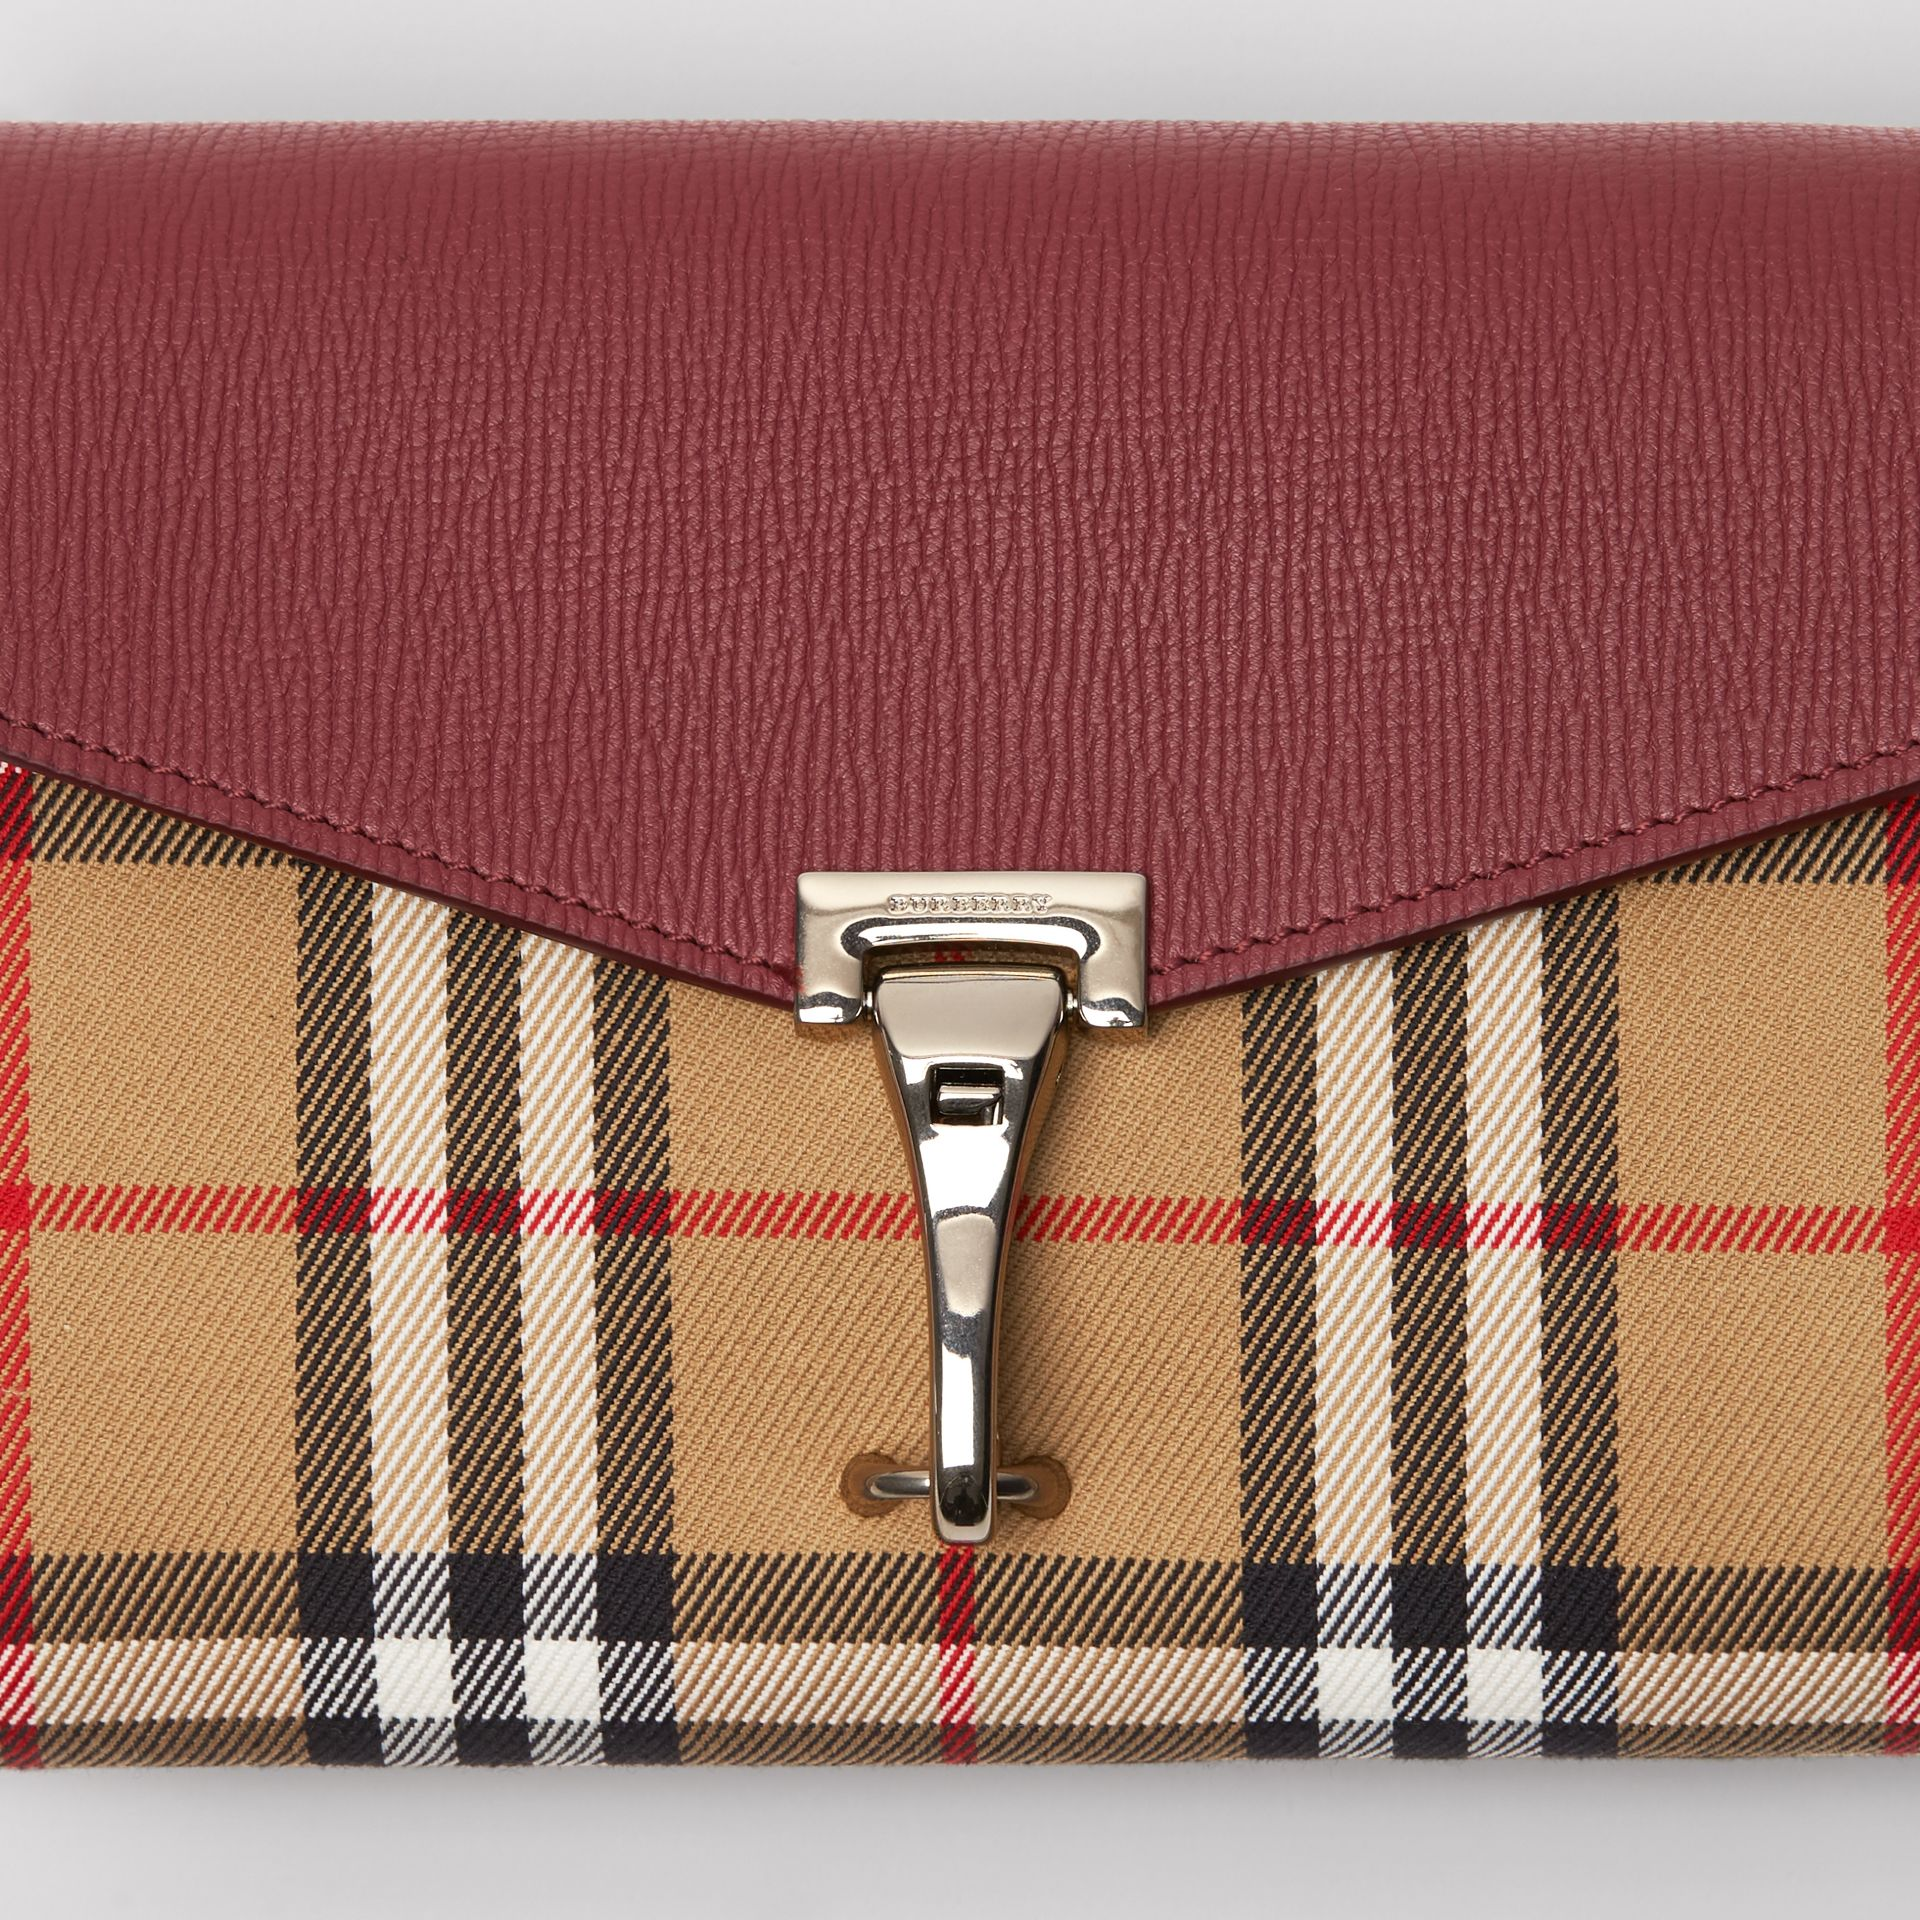 Mini Leather and Vintage Check Crossbody Bag in Crimson - Women | Burberry United Kingdom - gallery image 1